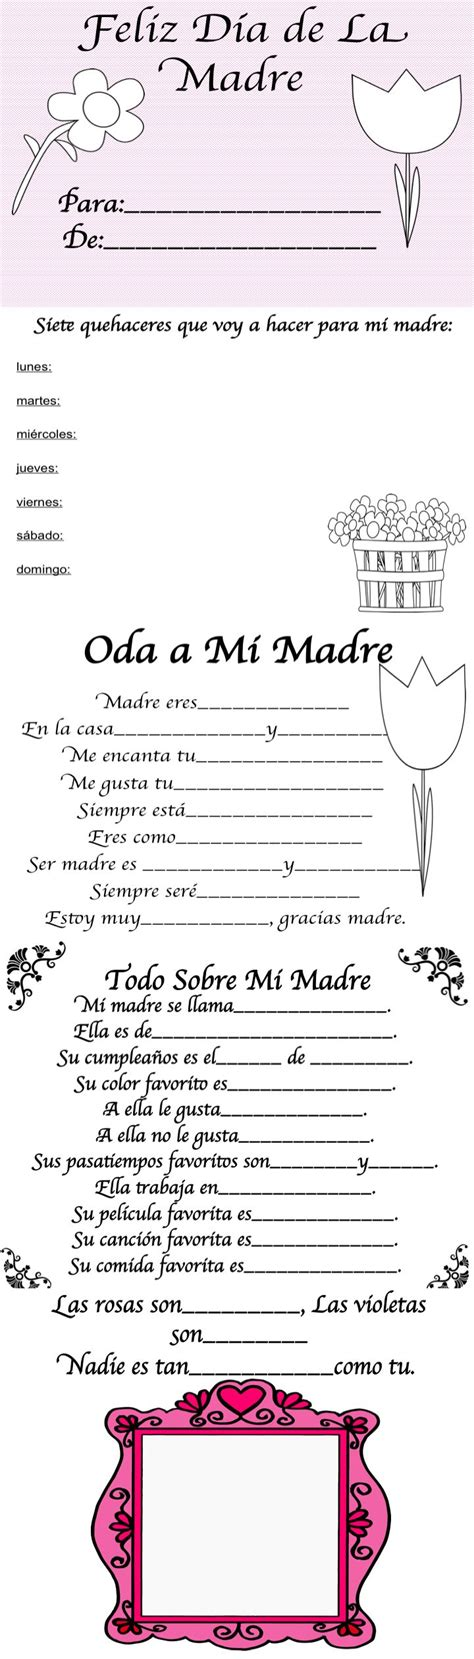 libro madre in spain spanish mothers day book feliz dia de la madre libro ideas for mothers day mother s day and